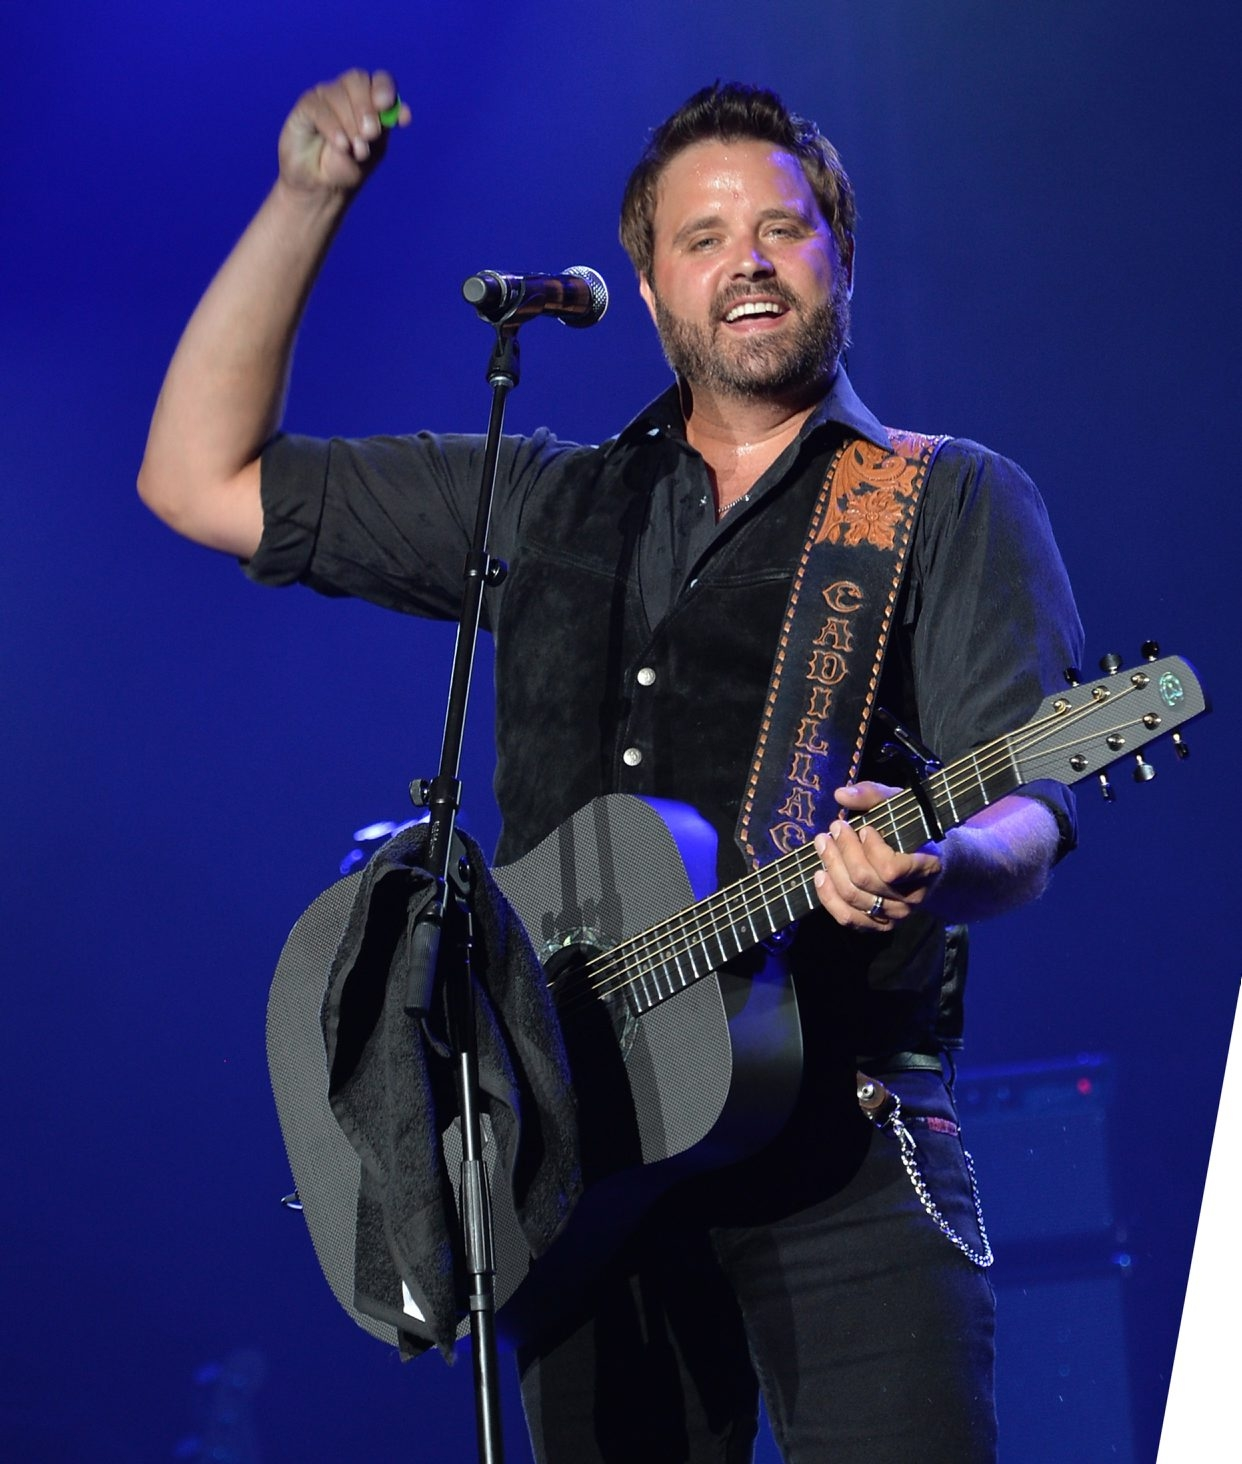 Randy Houser, shown here at a July concert in Prescott, Ariz., performed a trim, hour-long set at UB Saturday.